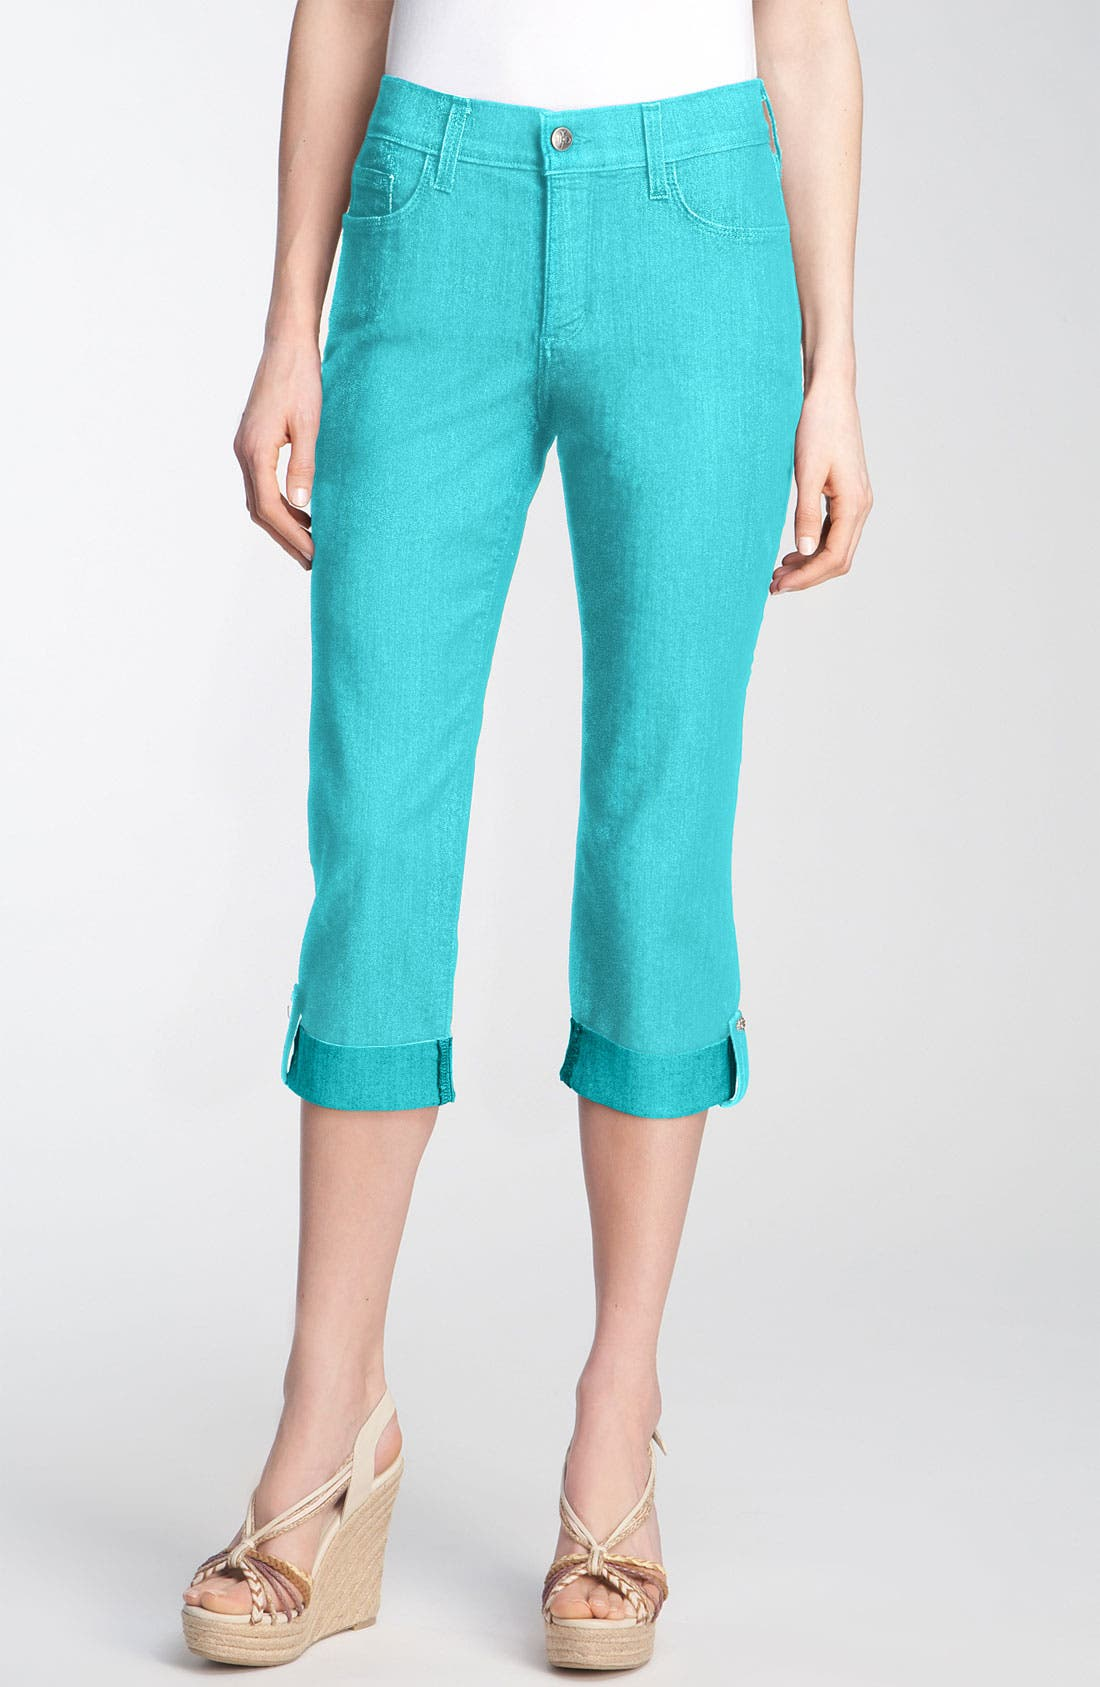 Alternate Image 1 Selected - NYDJ 'Carmen' Stretch Twill Crop Jeans (Petite)